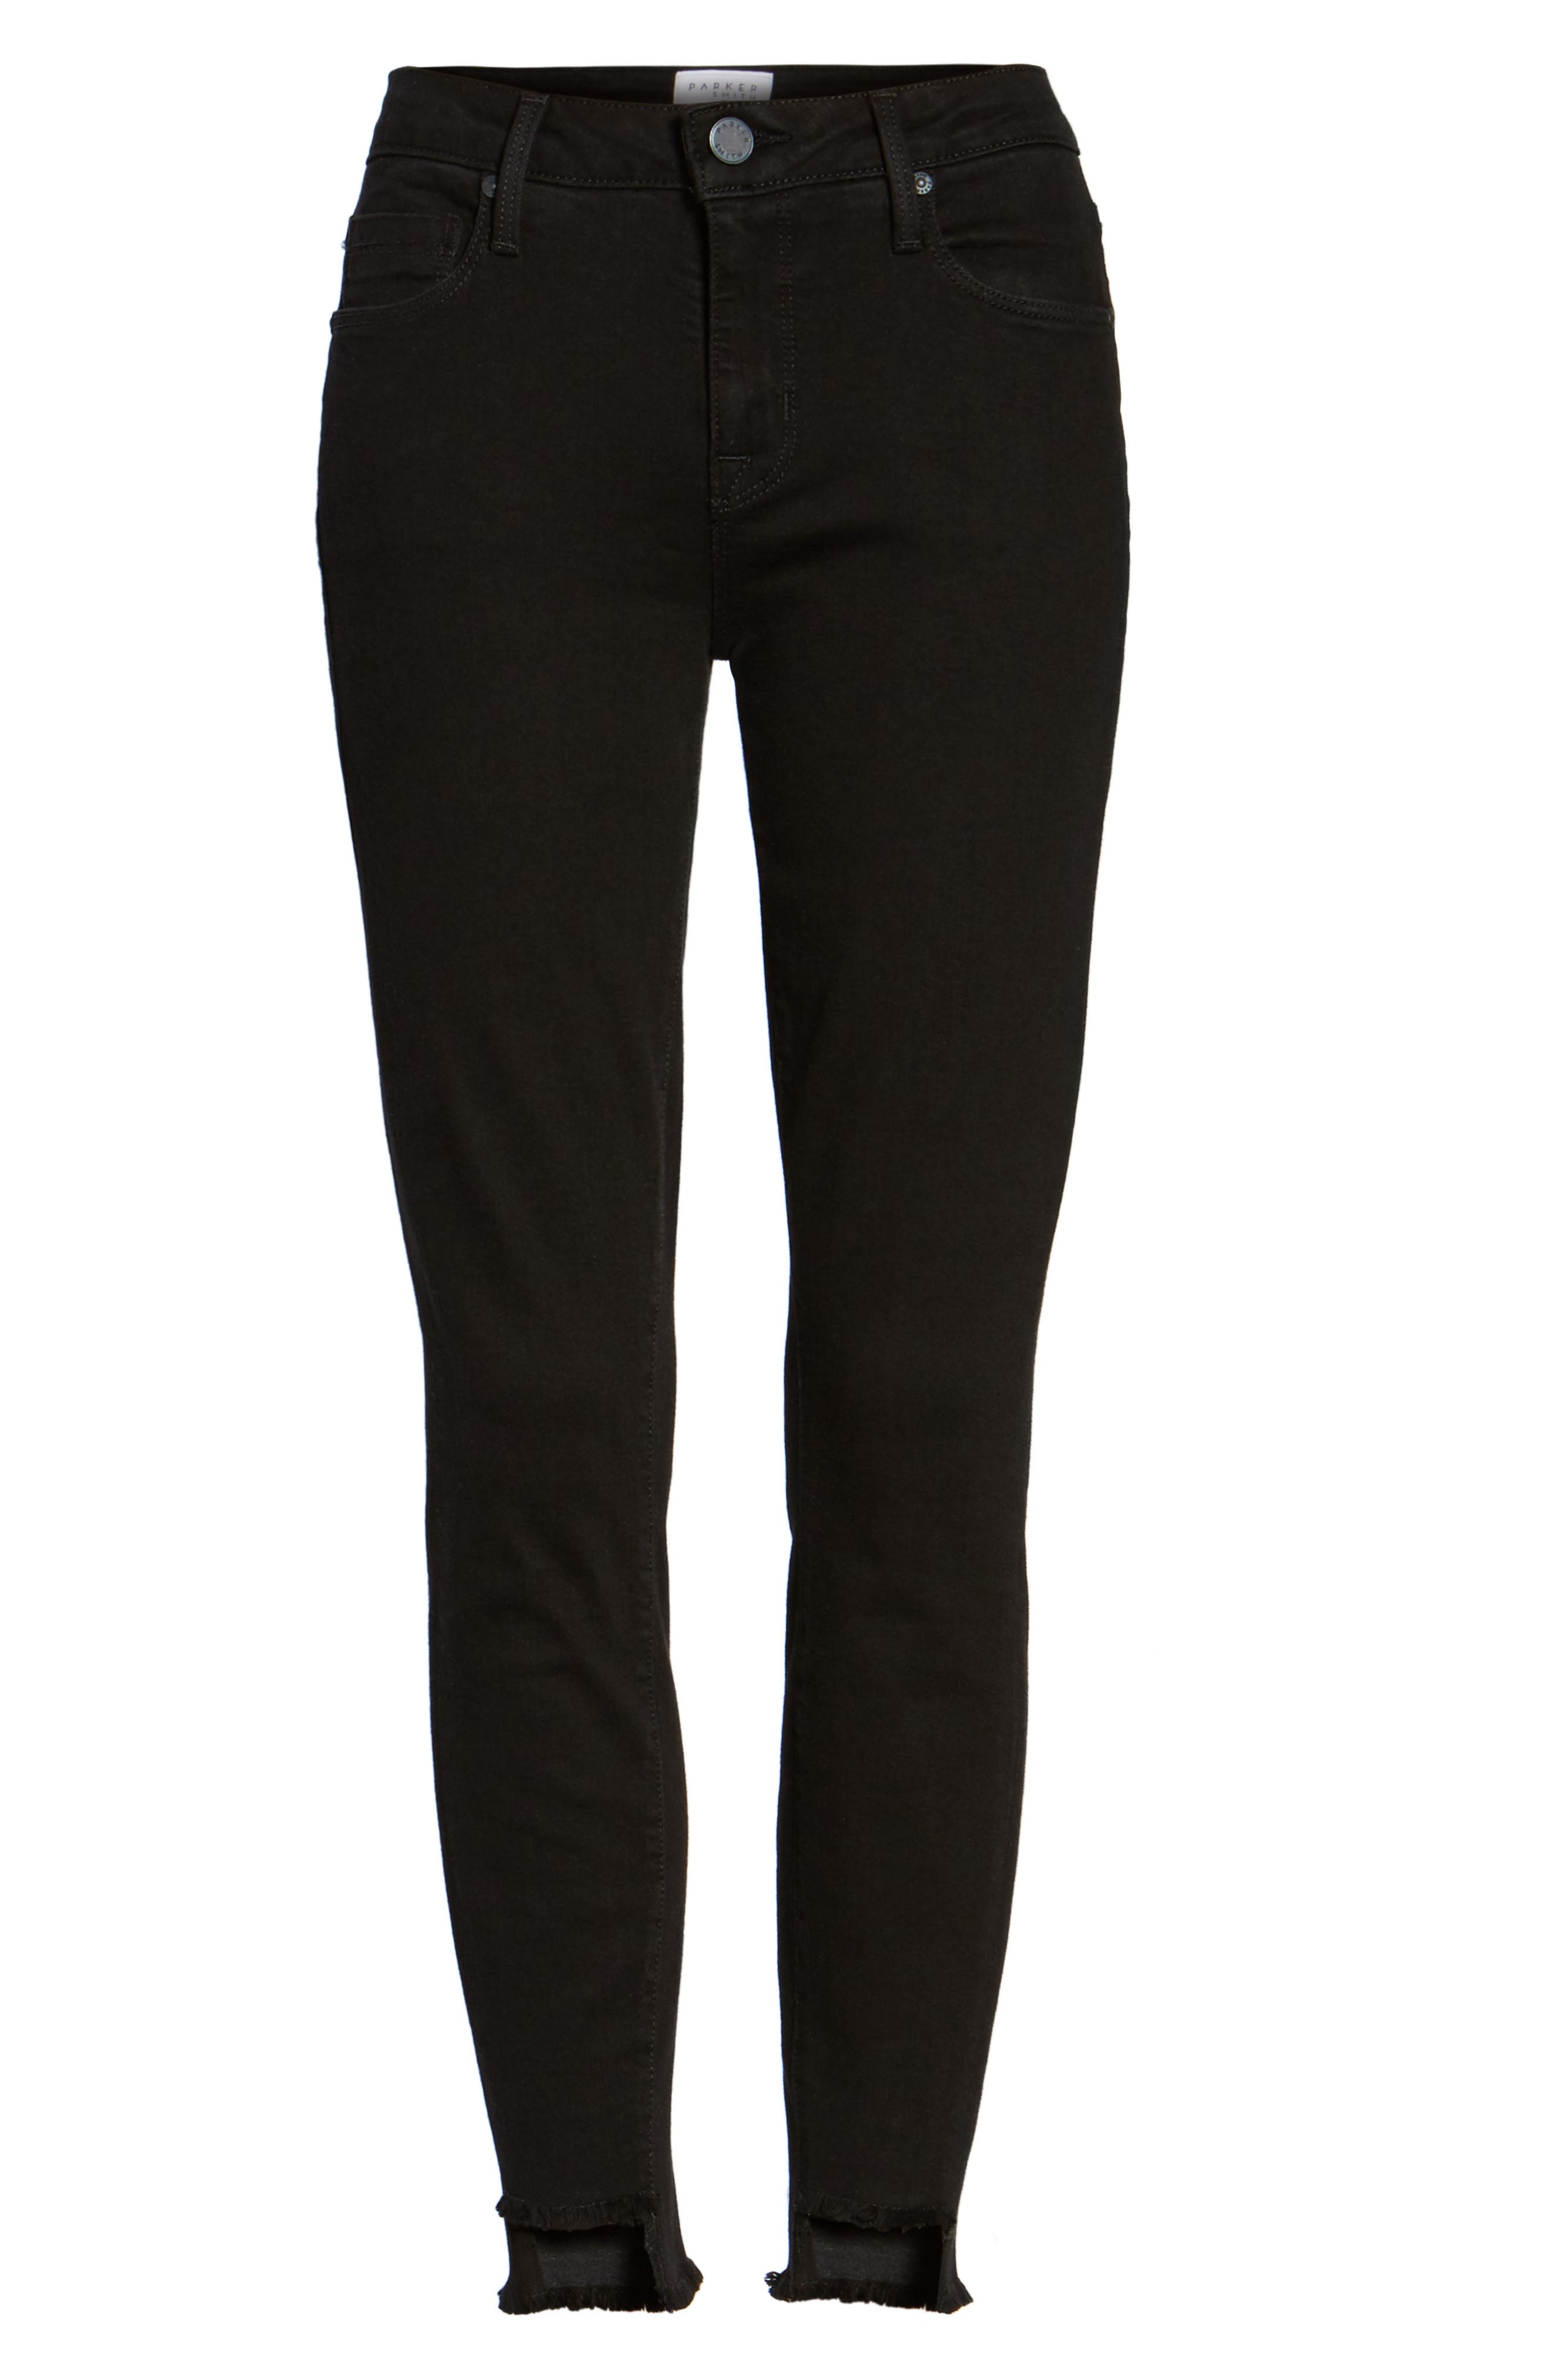 Twisted Seam Ankle Skinny Jeans,                             Alternate thumbnail 6, color,                             001